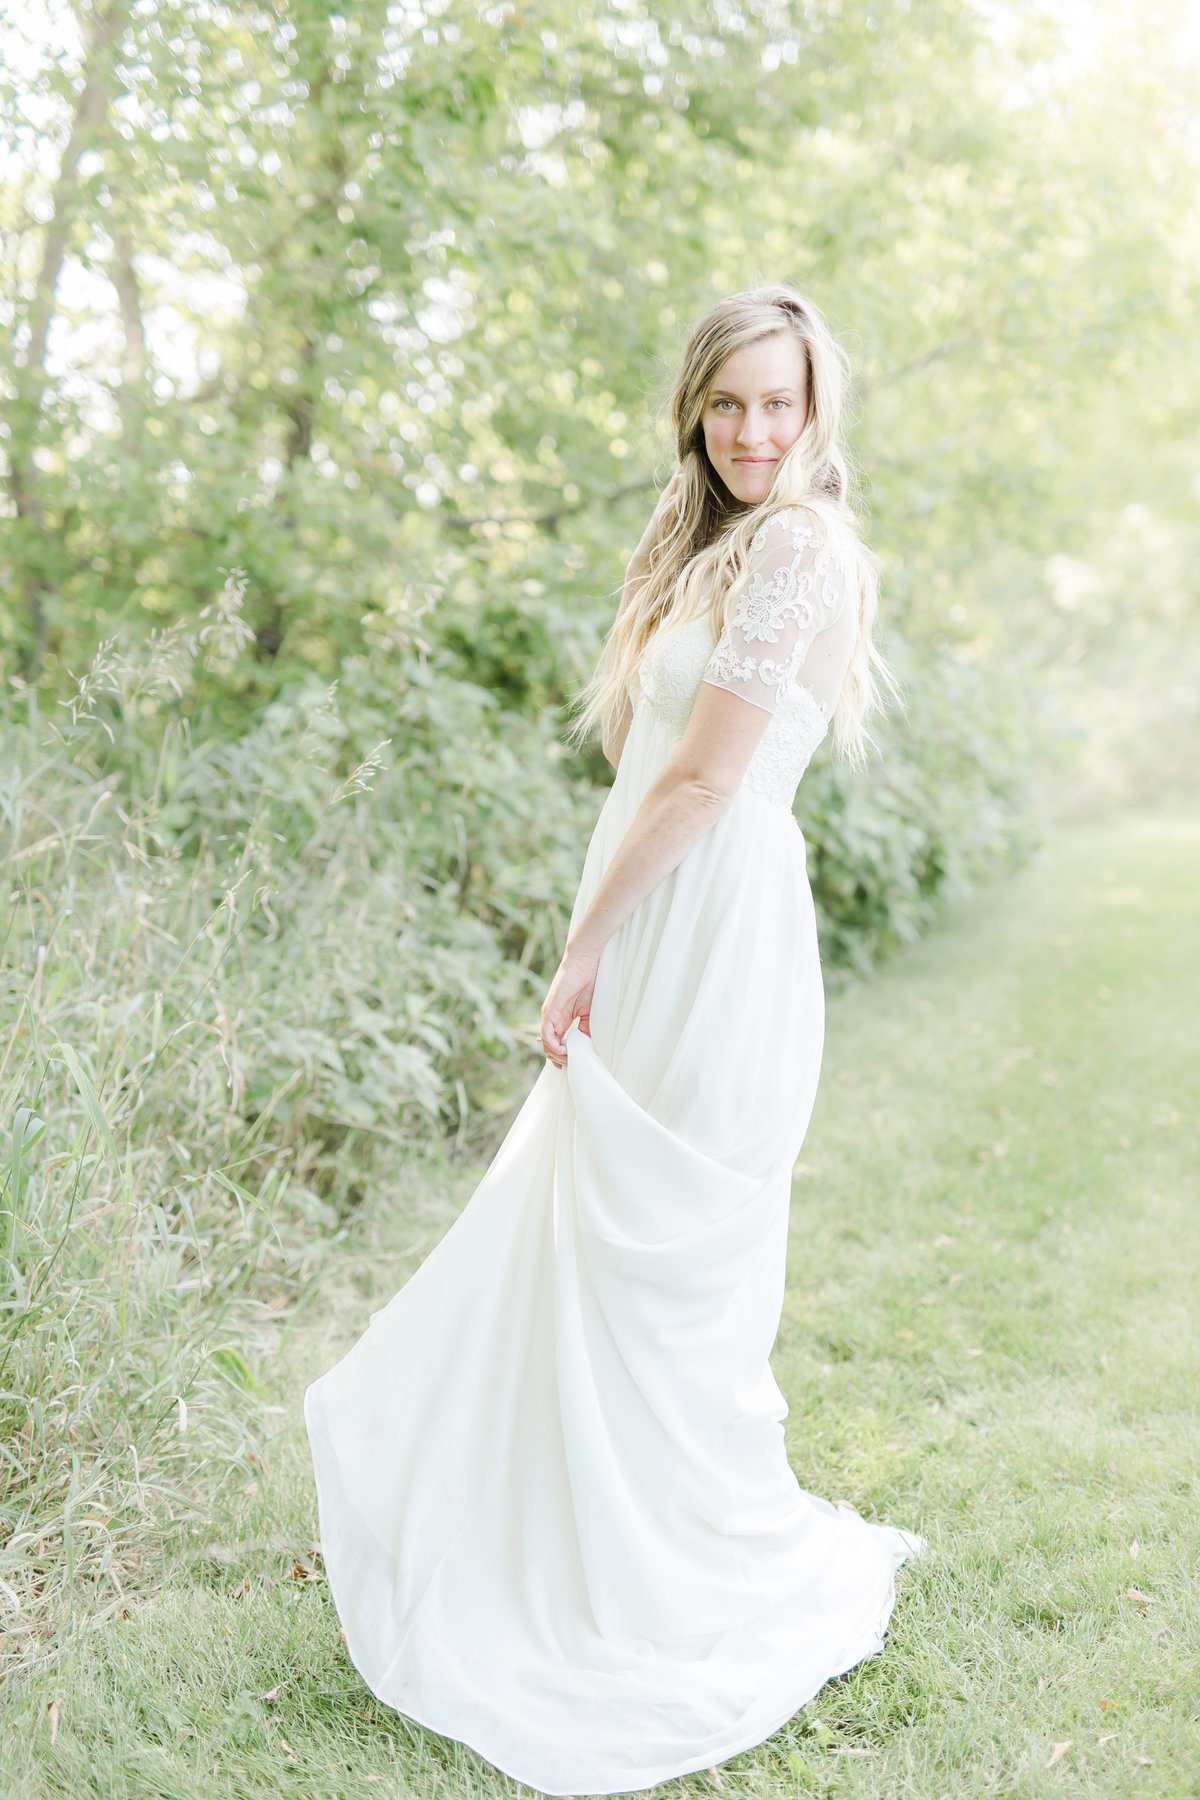 Kailey - Styled Shoot - New Edits-24